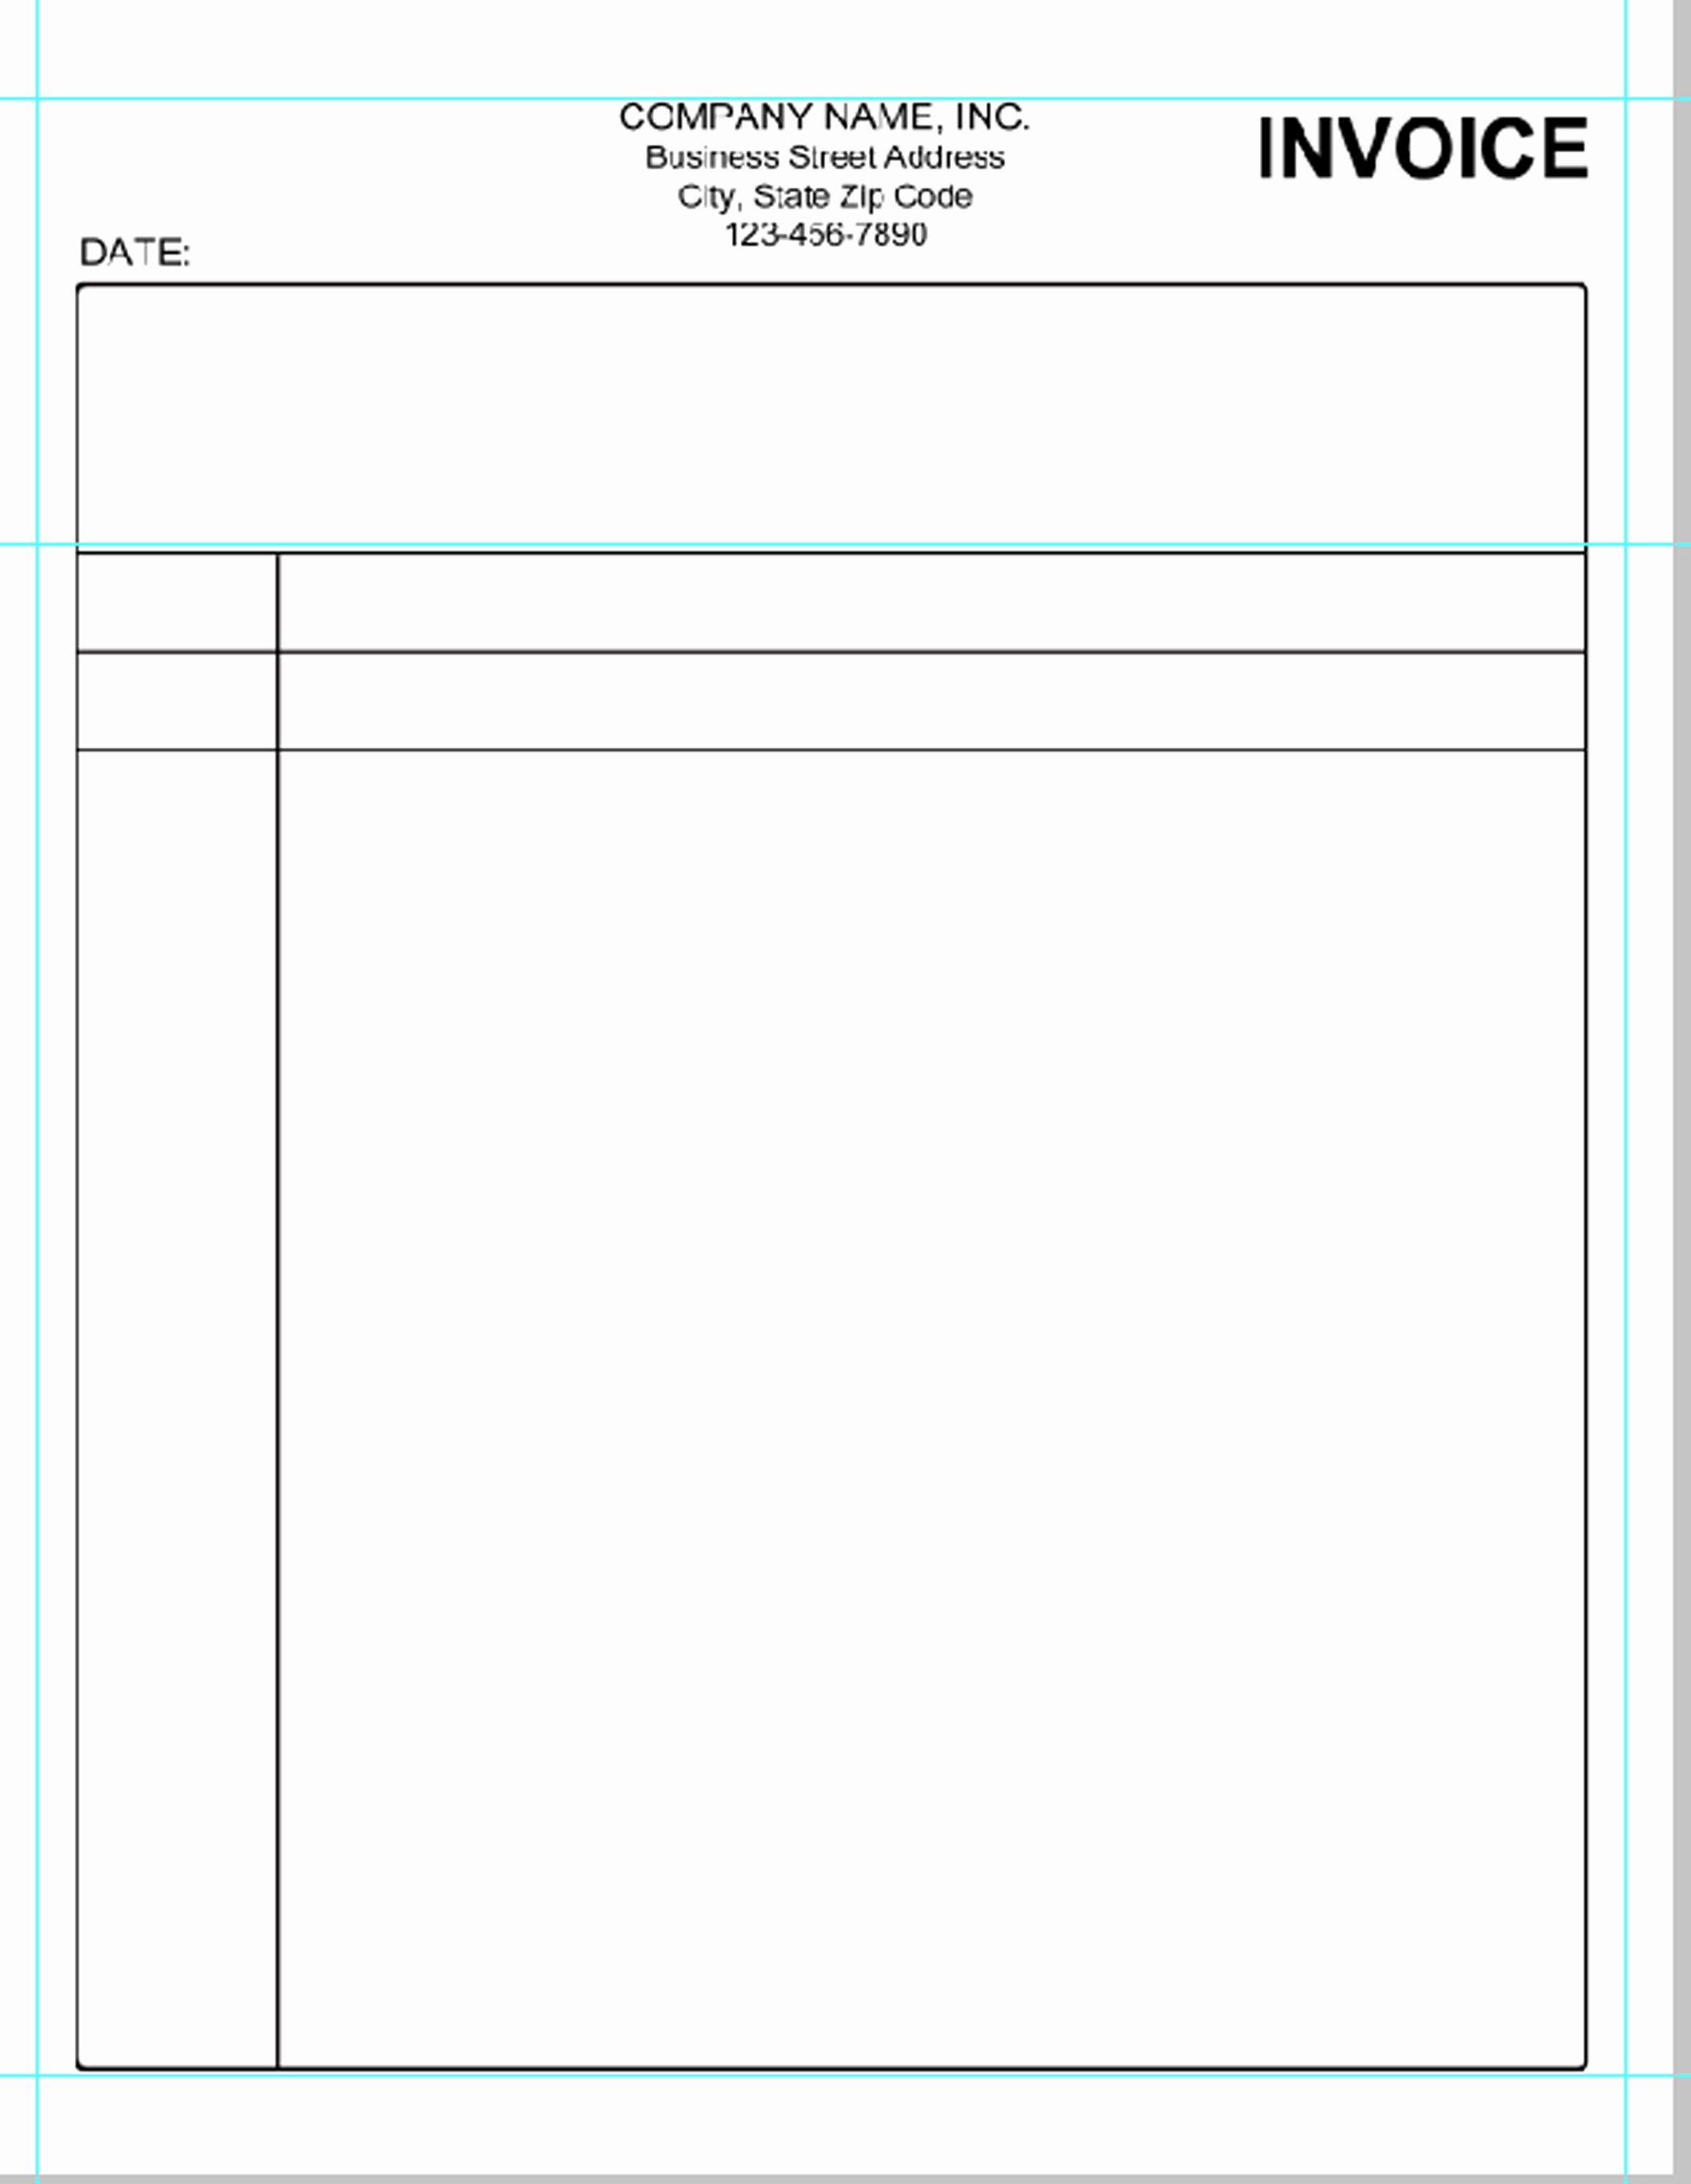 Free Templates for Invoices Printable Awesome Simple Invoice Template Pdf